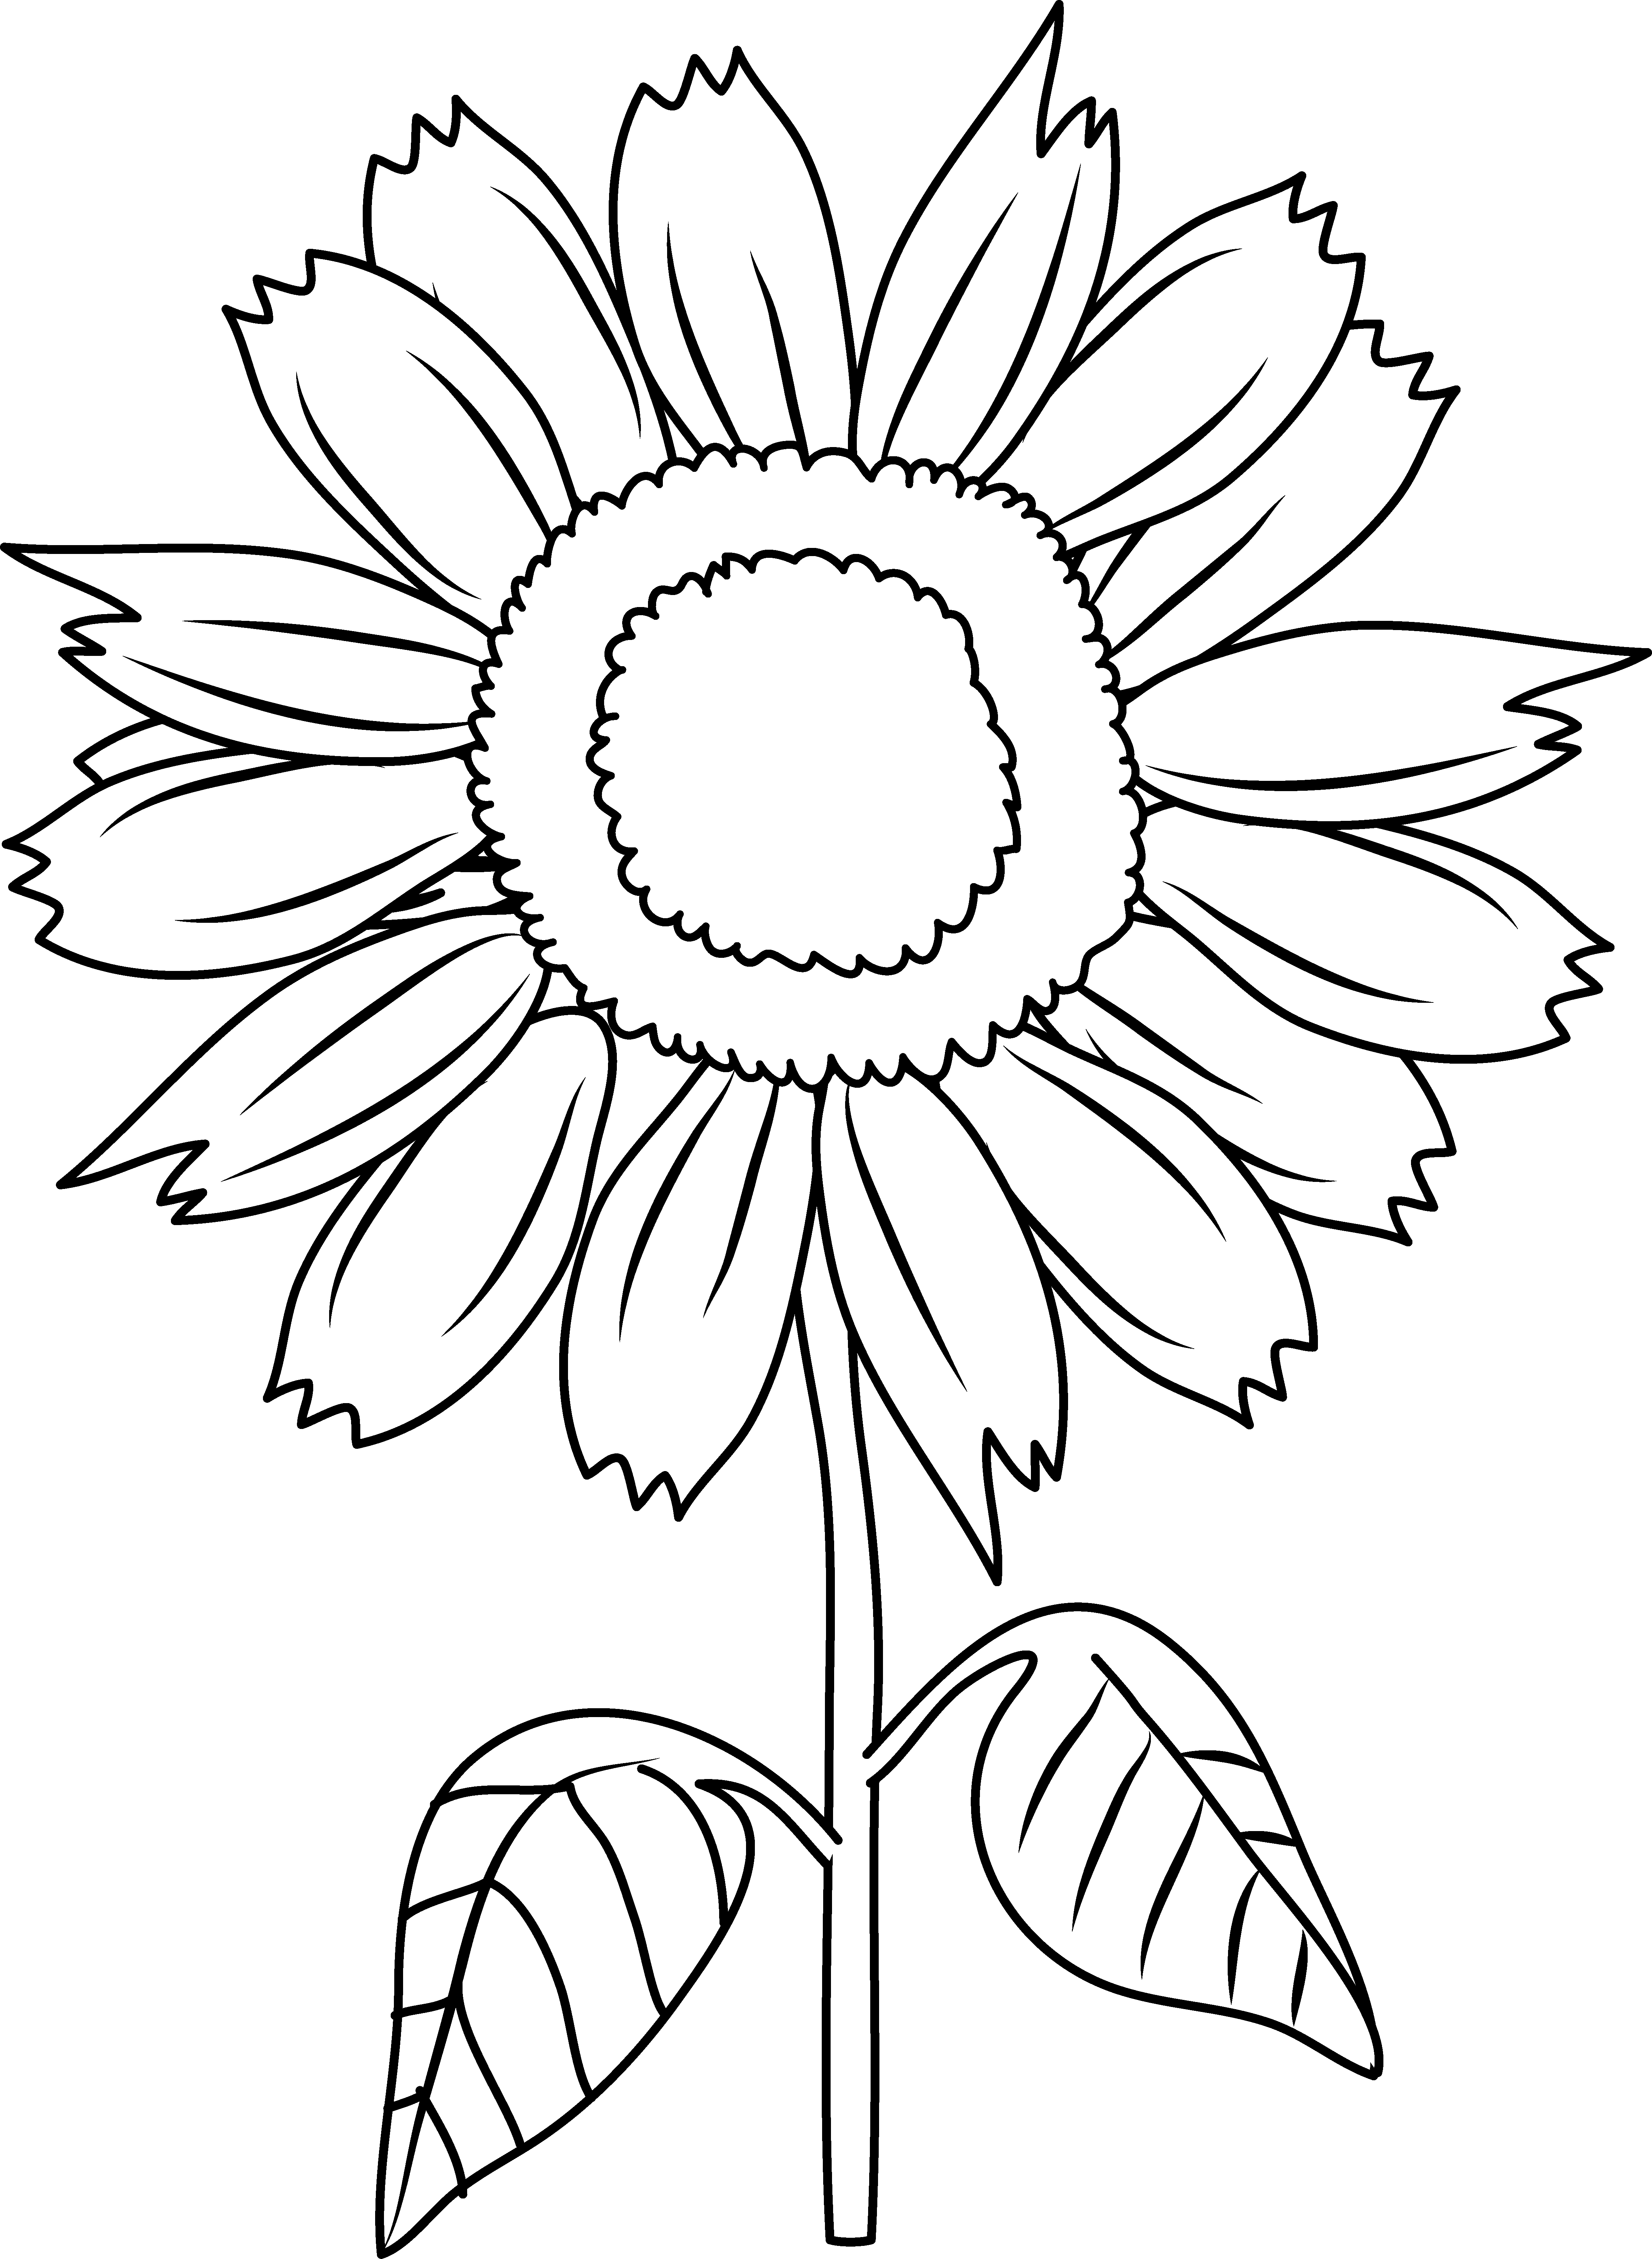 coloring sunflower printable sunflower is blooming coloring page download print coloring sunflower printable